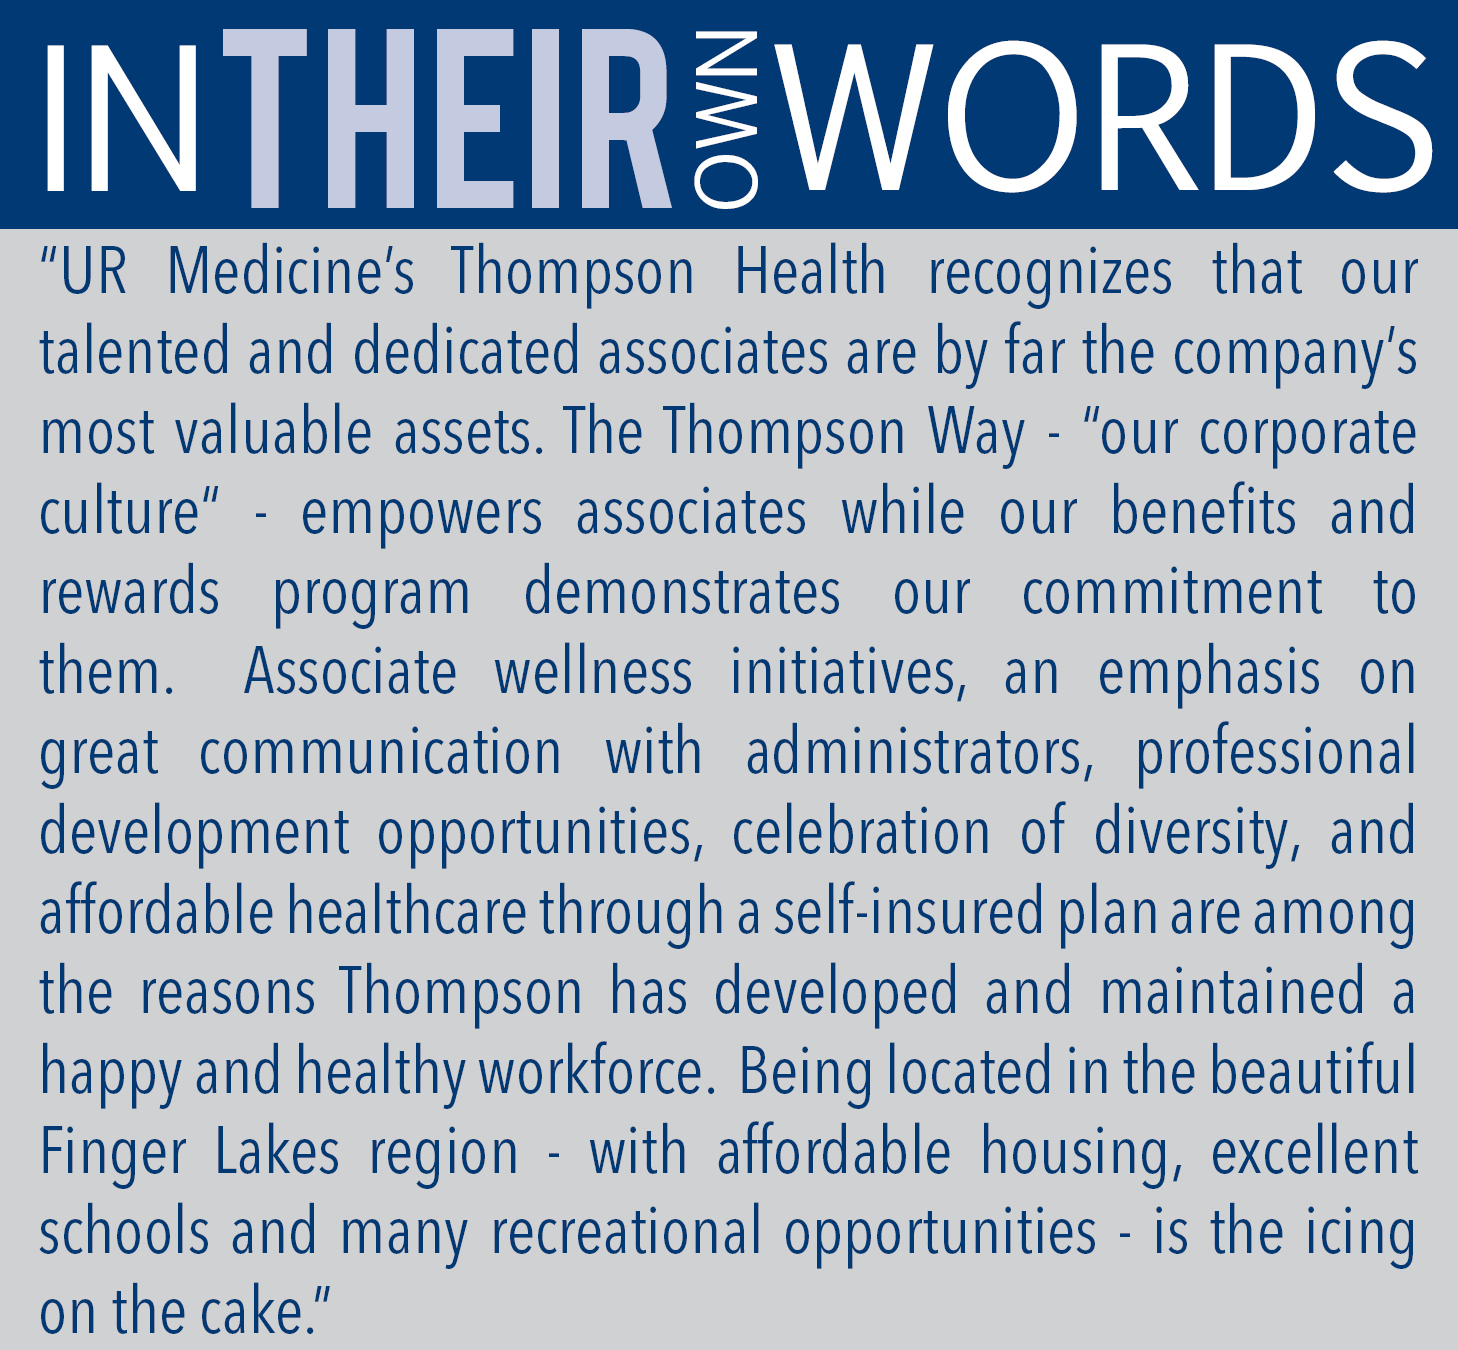 thompsonhealth-words